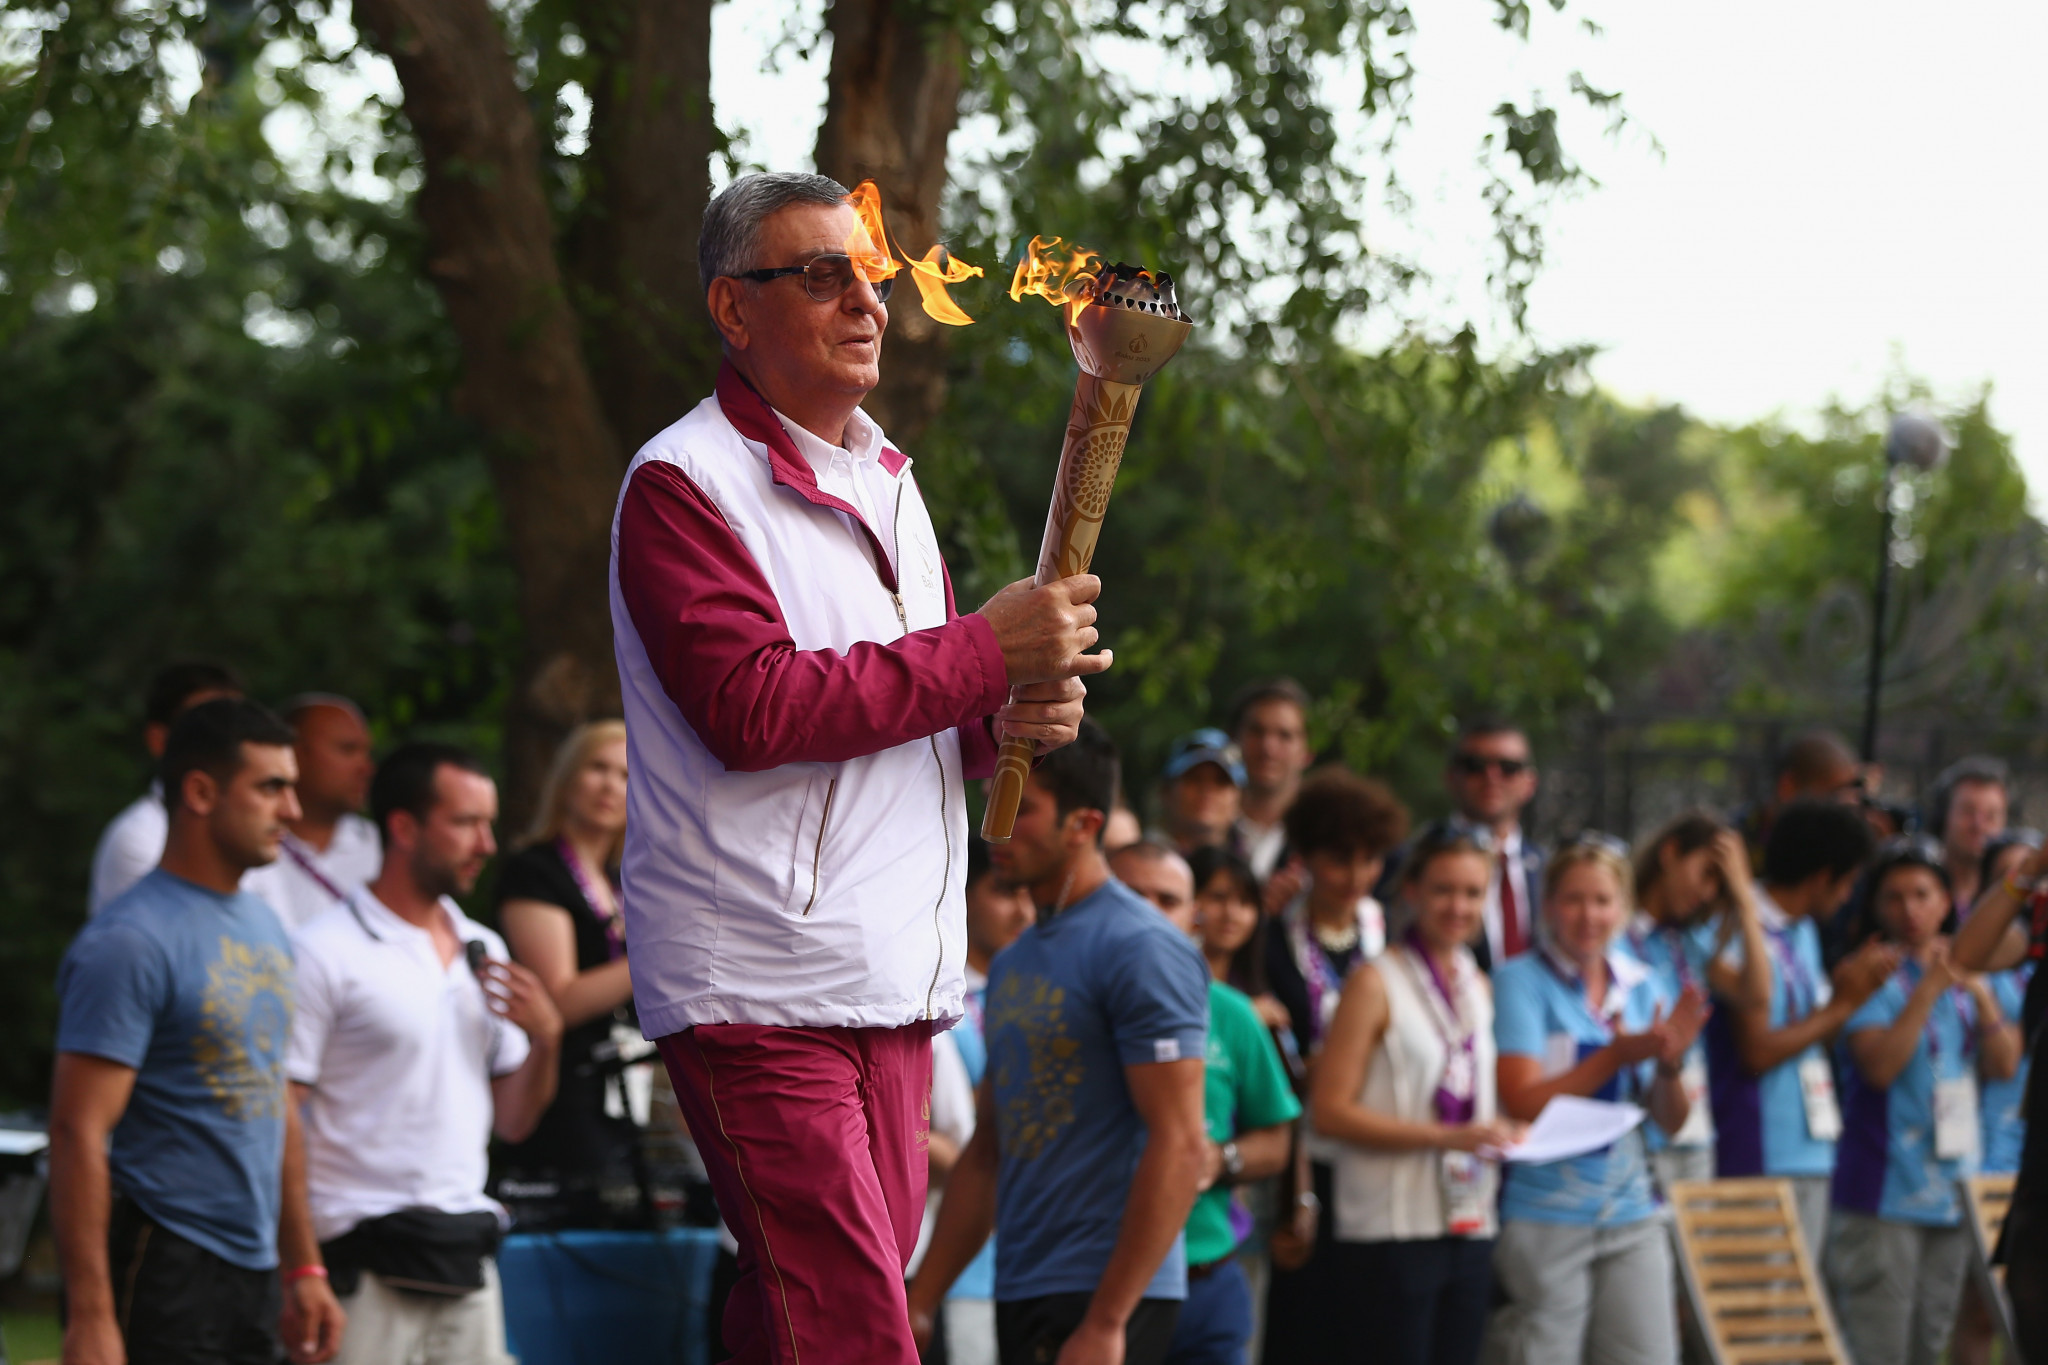 Baku came up with an original approach to their Torch Relay ©Getty Images